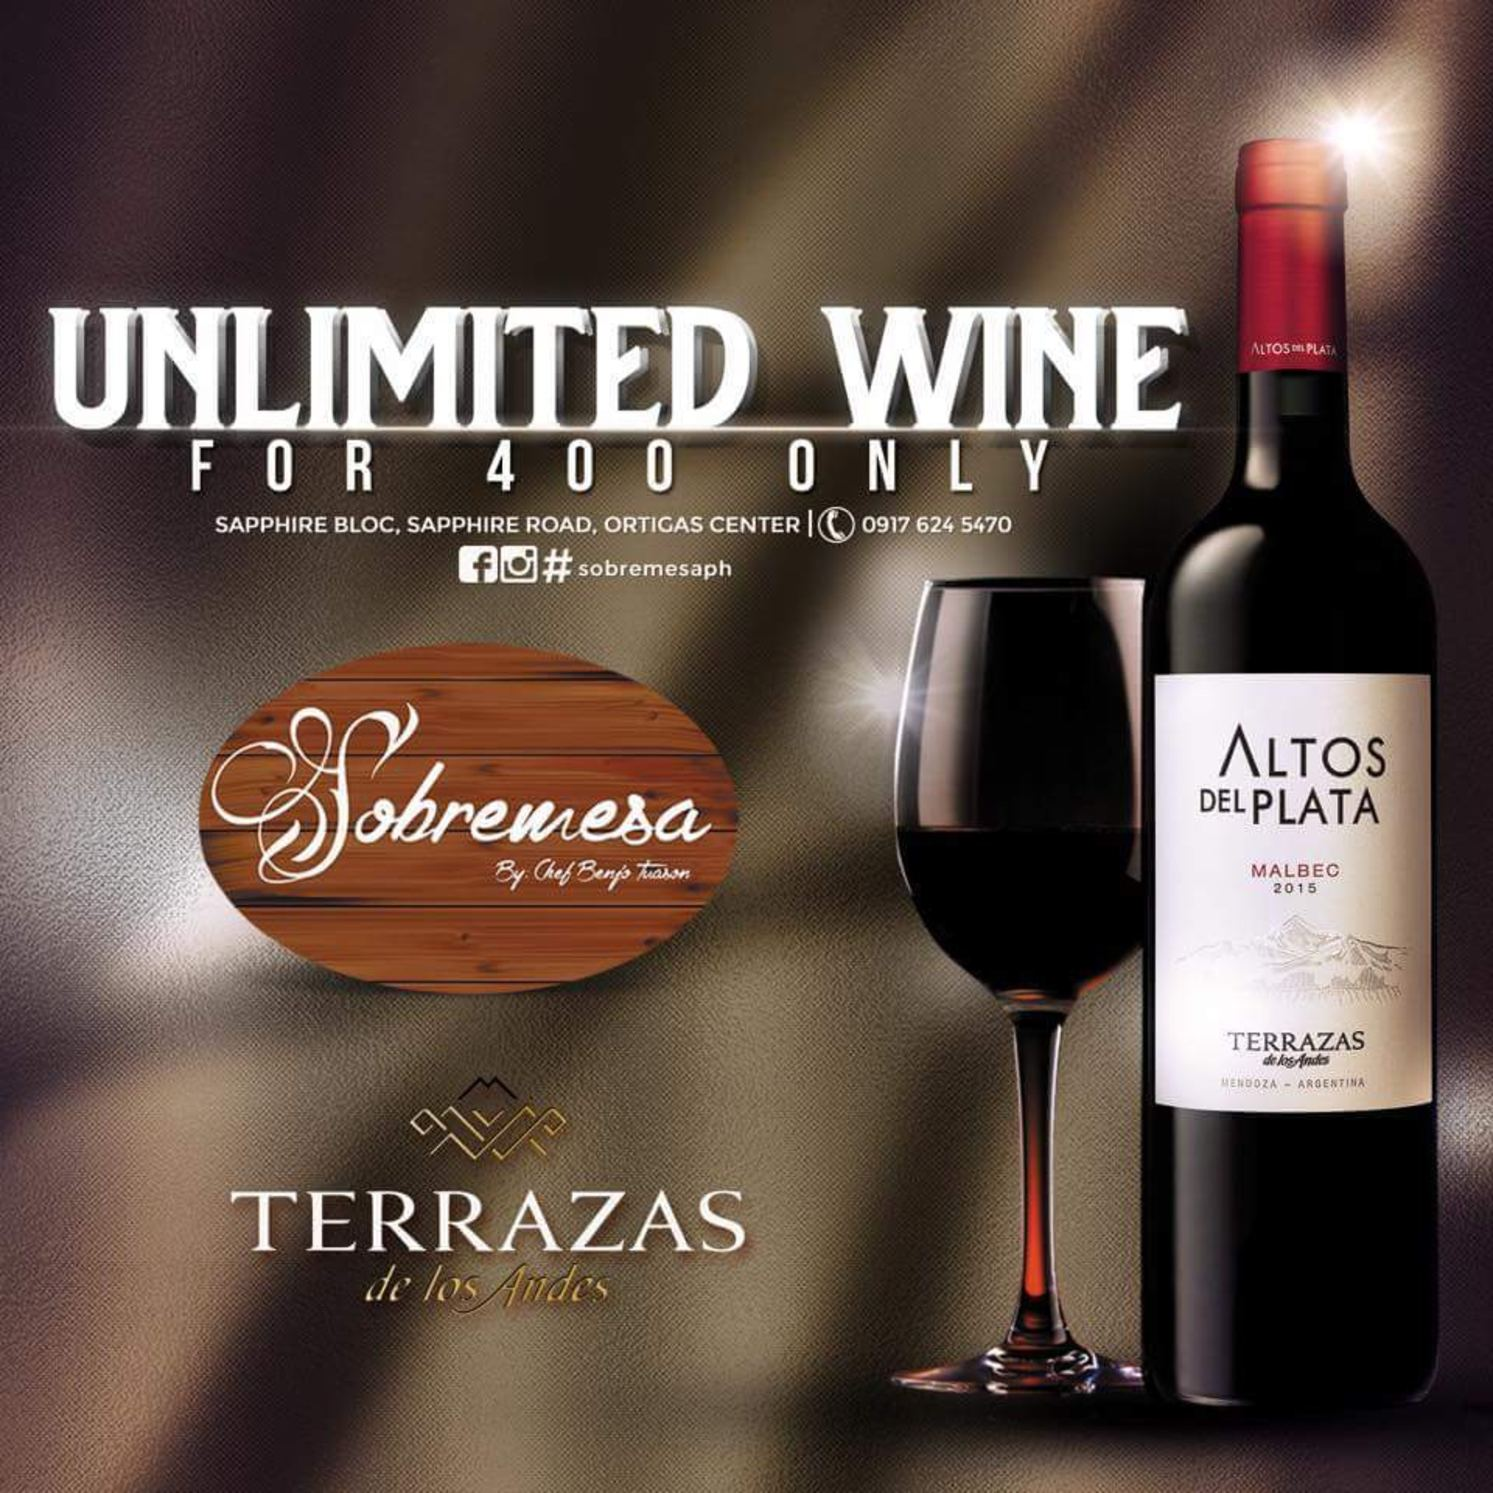 Calaméo Enjoy Unlimited Wine For Only P400 At Sobremesa